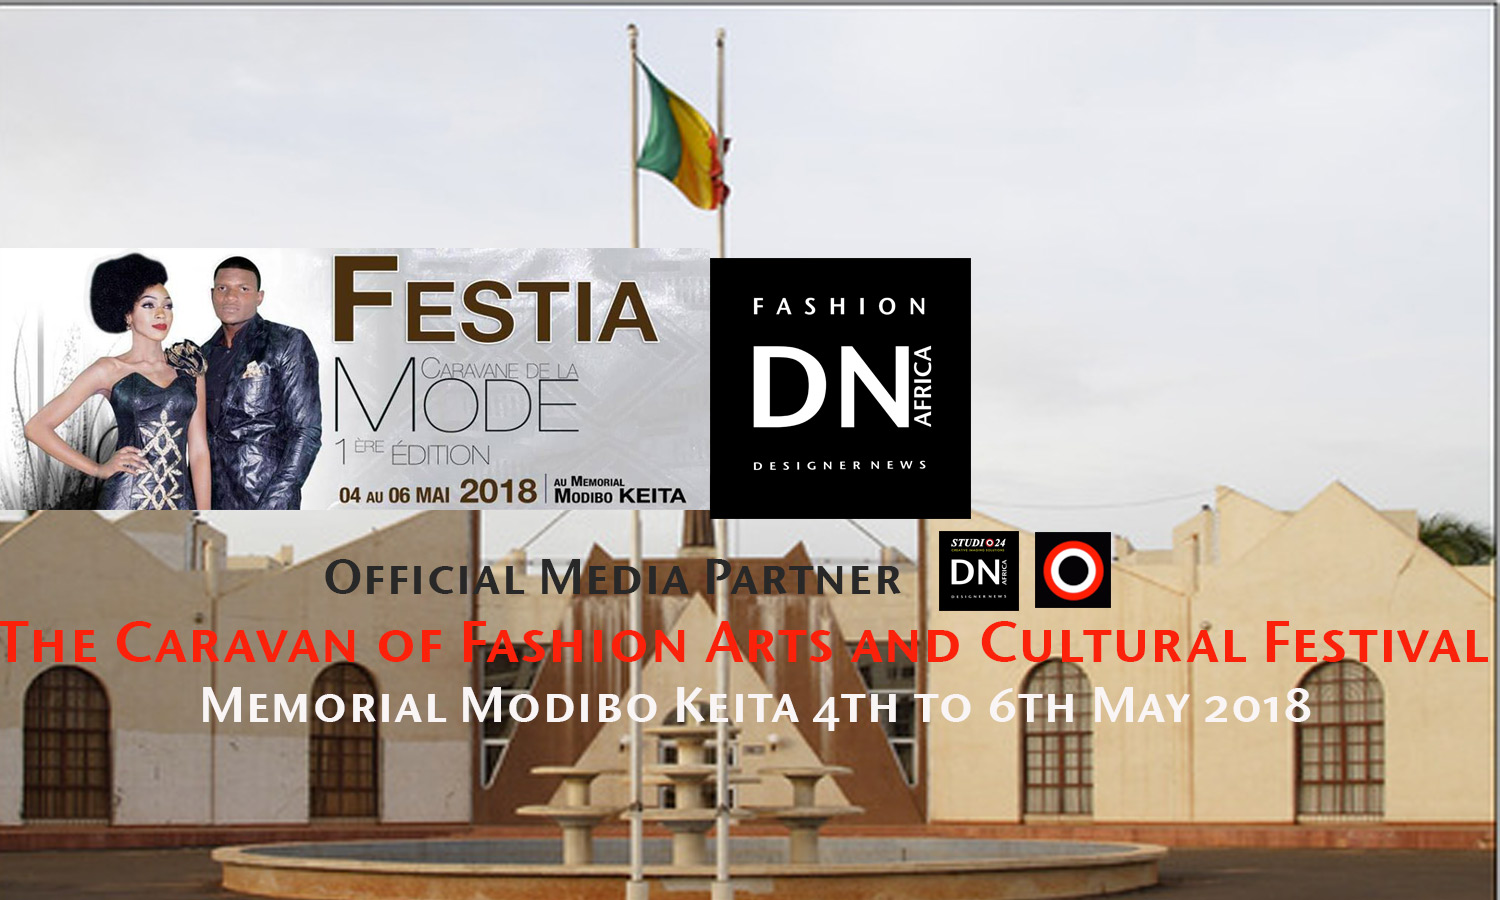 AFRICAN FASHION STYLE MAGASINE - FESTIA-Caravan-of-Fashion-Arts-and-Cultural-Festival 2018 BY BORTHINI - DN AFRICA - STUDIO 24 NIGERIA